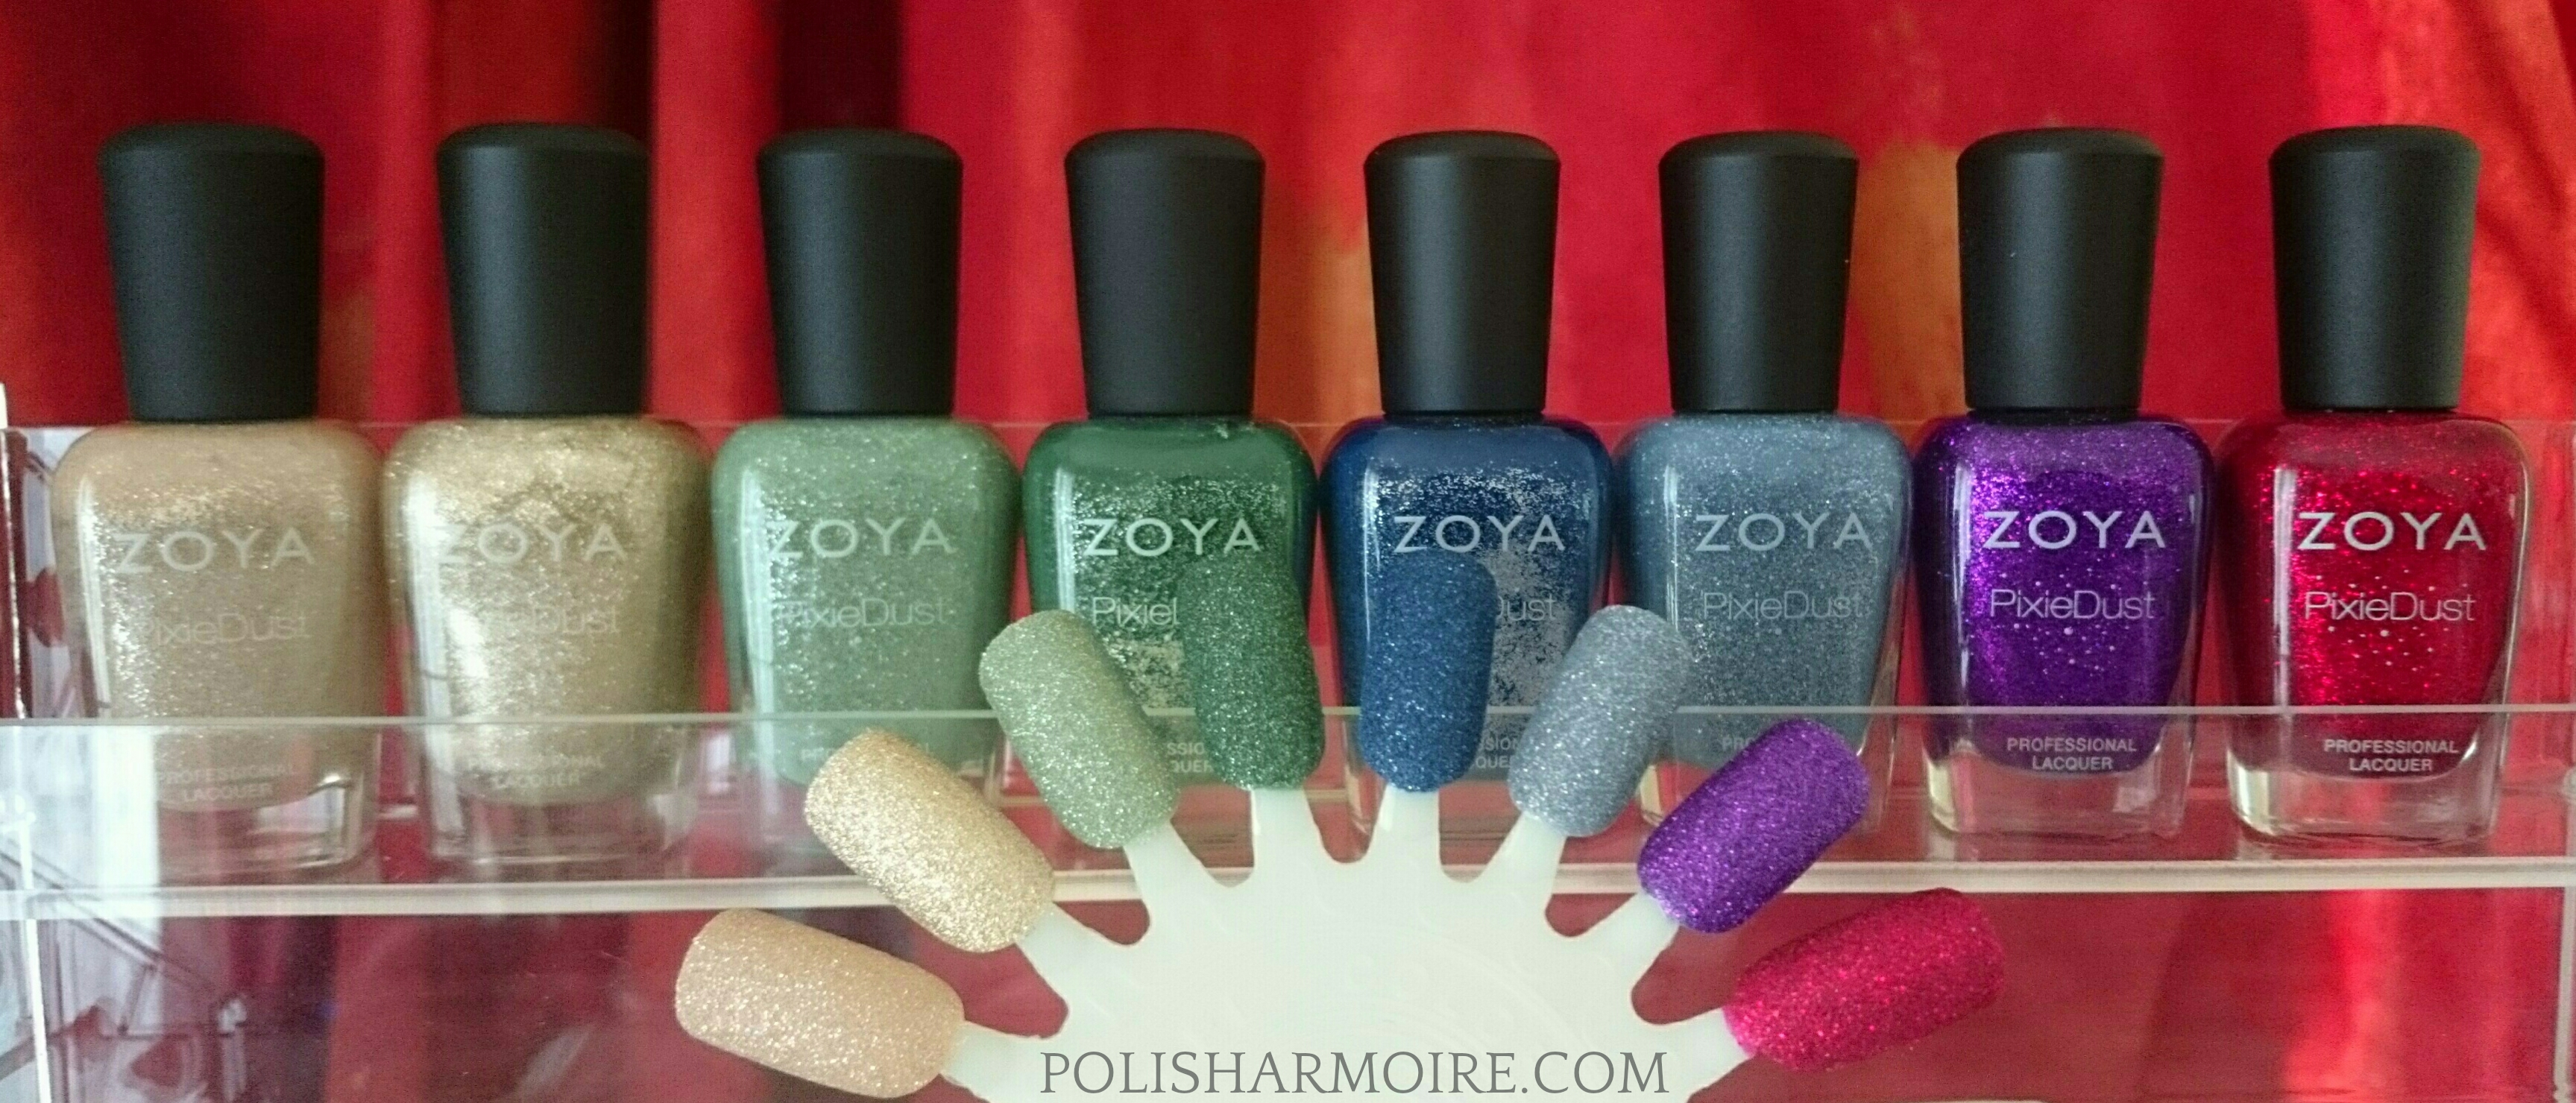 Zoya (Discontinued) PixieDust Swatches | POLISH ARMOIRE